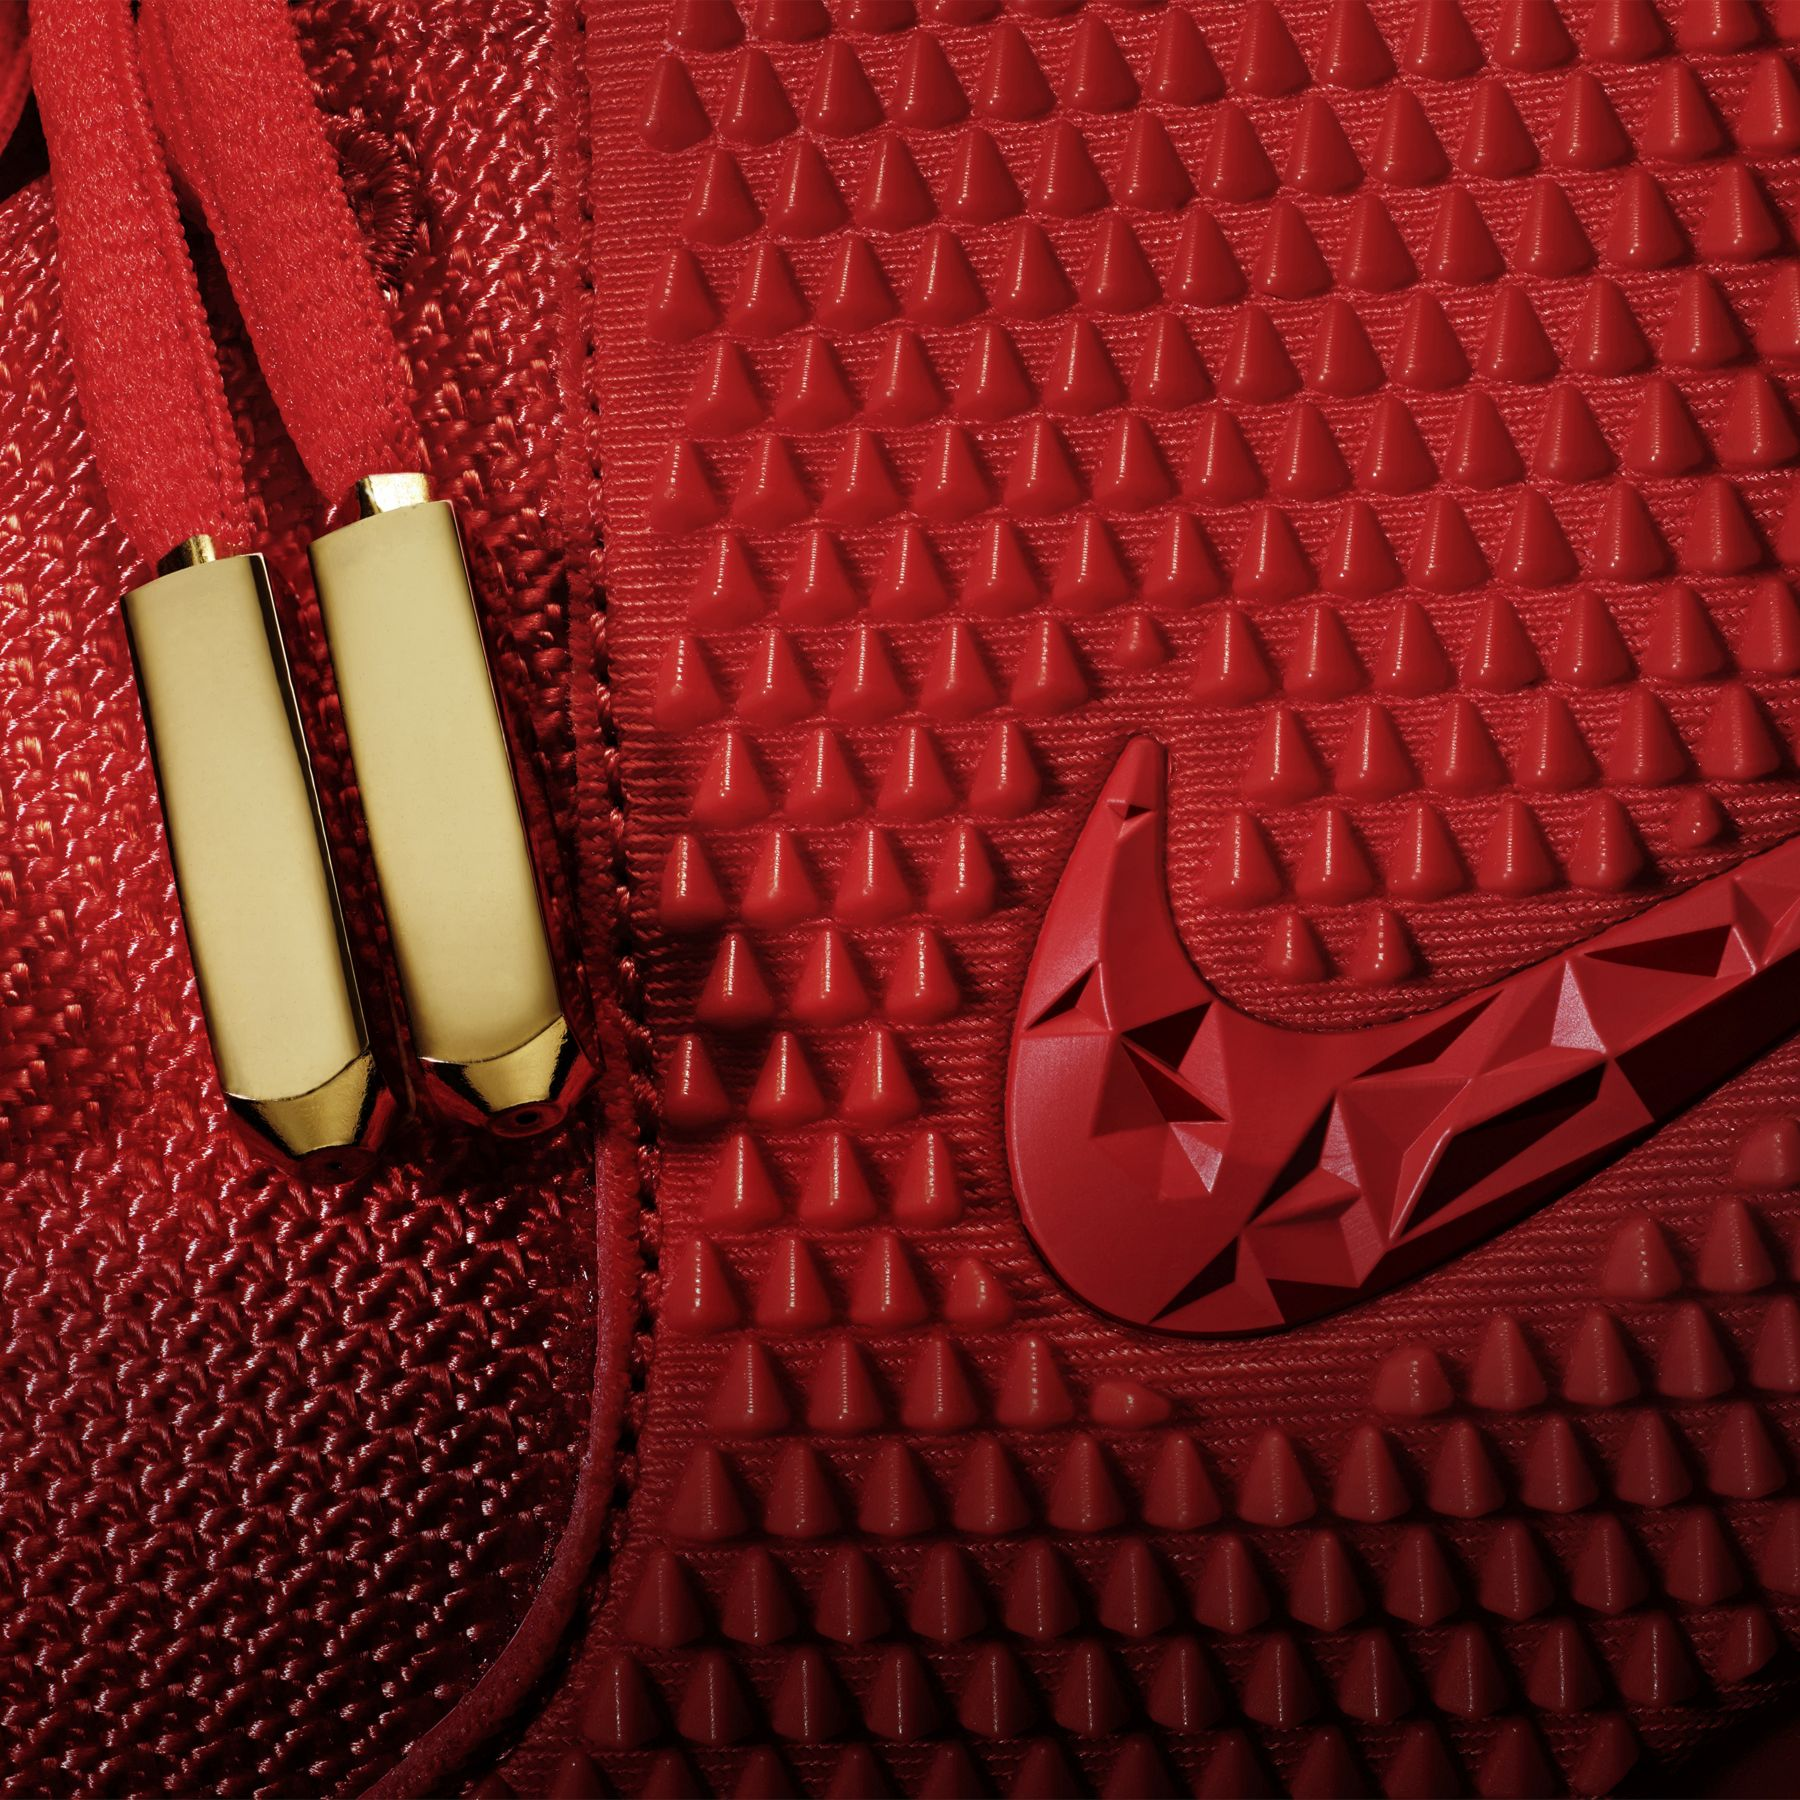 ea2509cd0 ... Air Yeezy 2 Red Octoberwere released exclusively on Nikestore. So  because when buying this sneaker